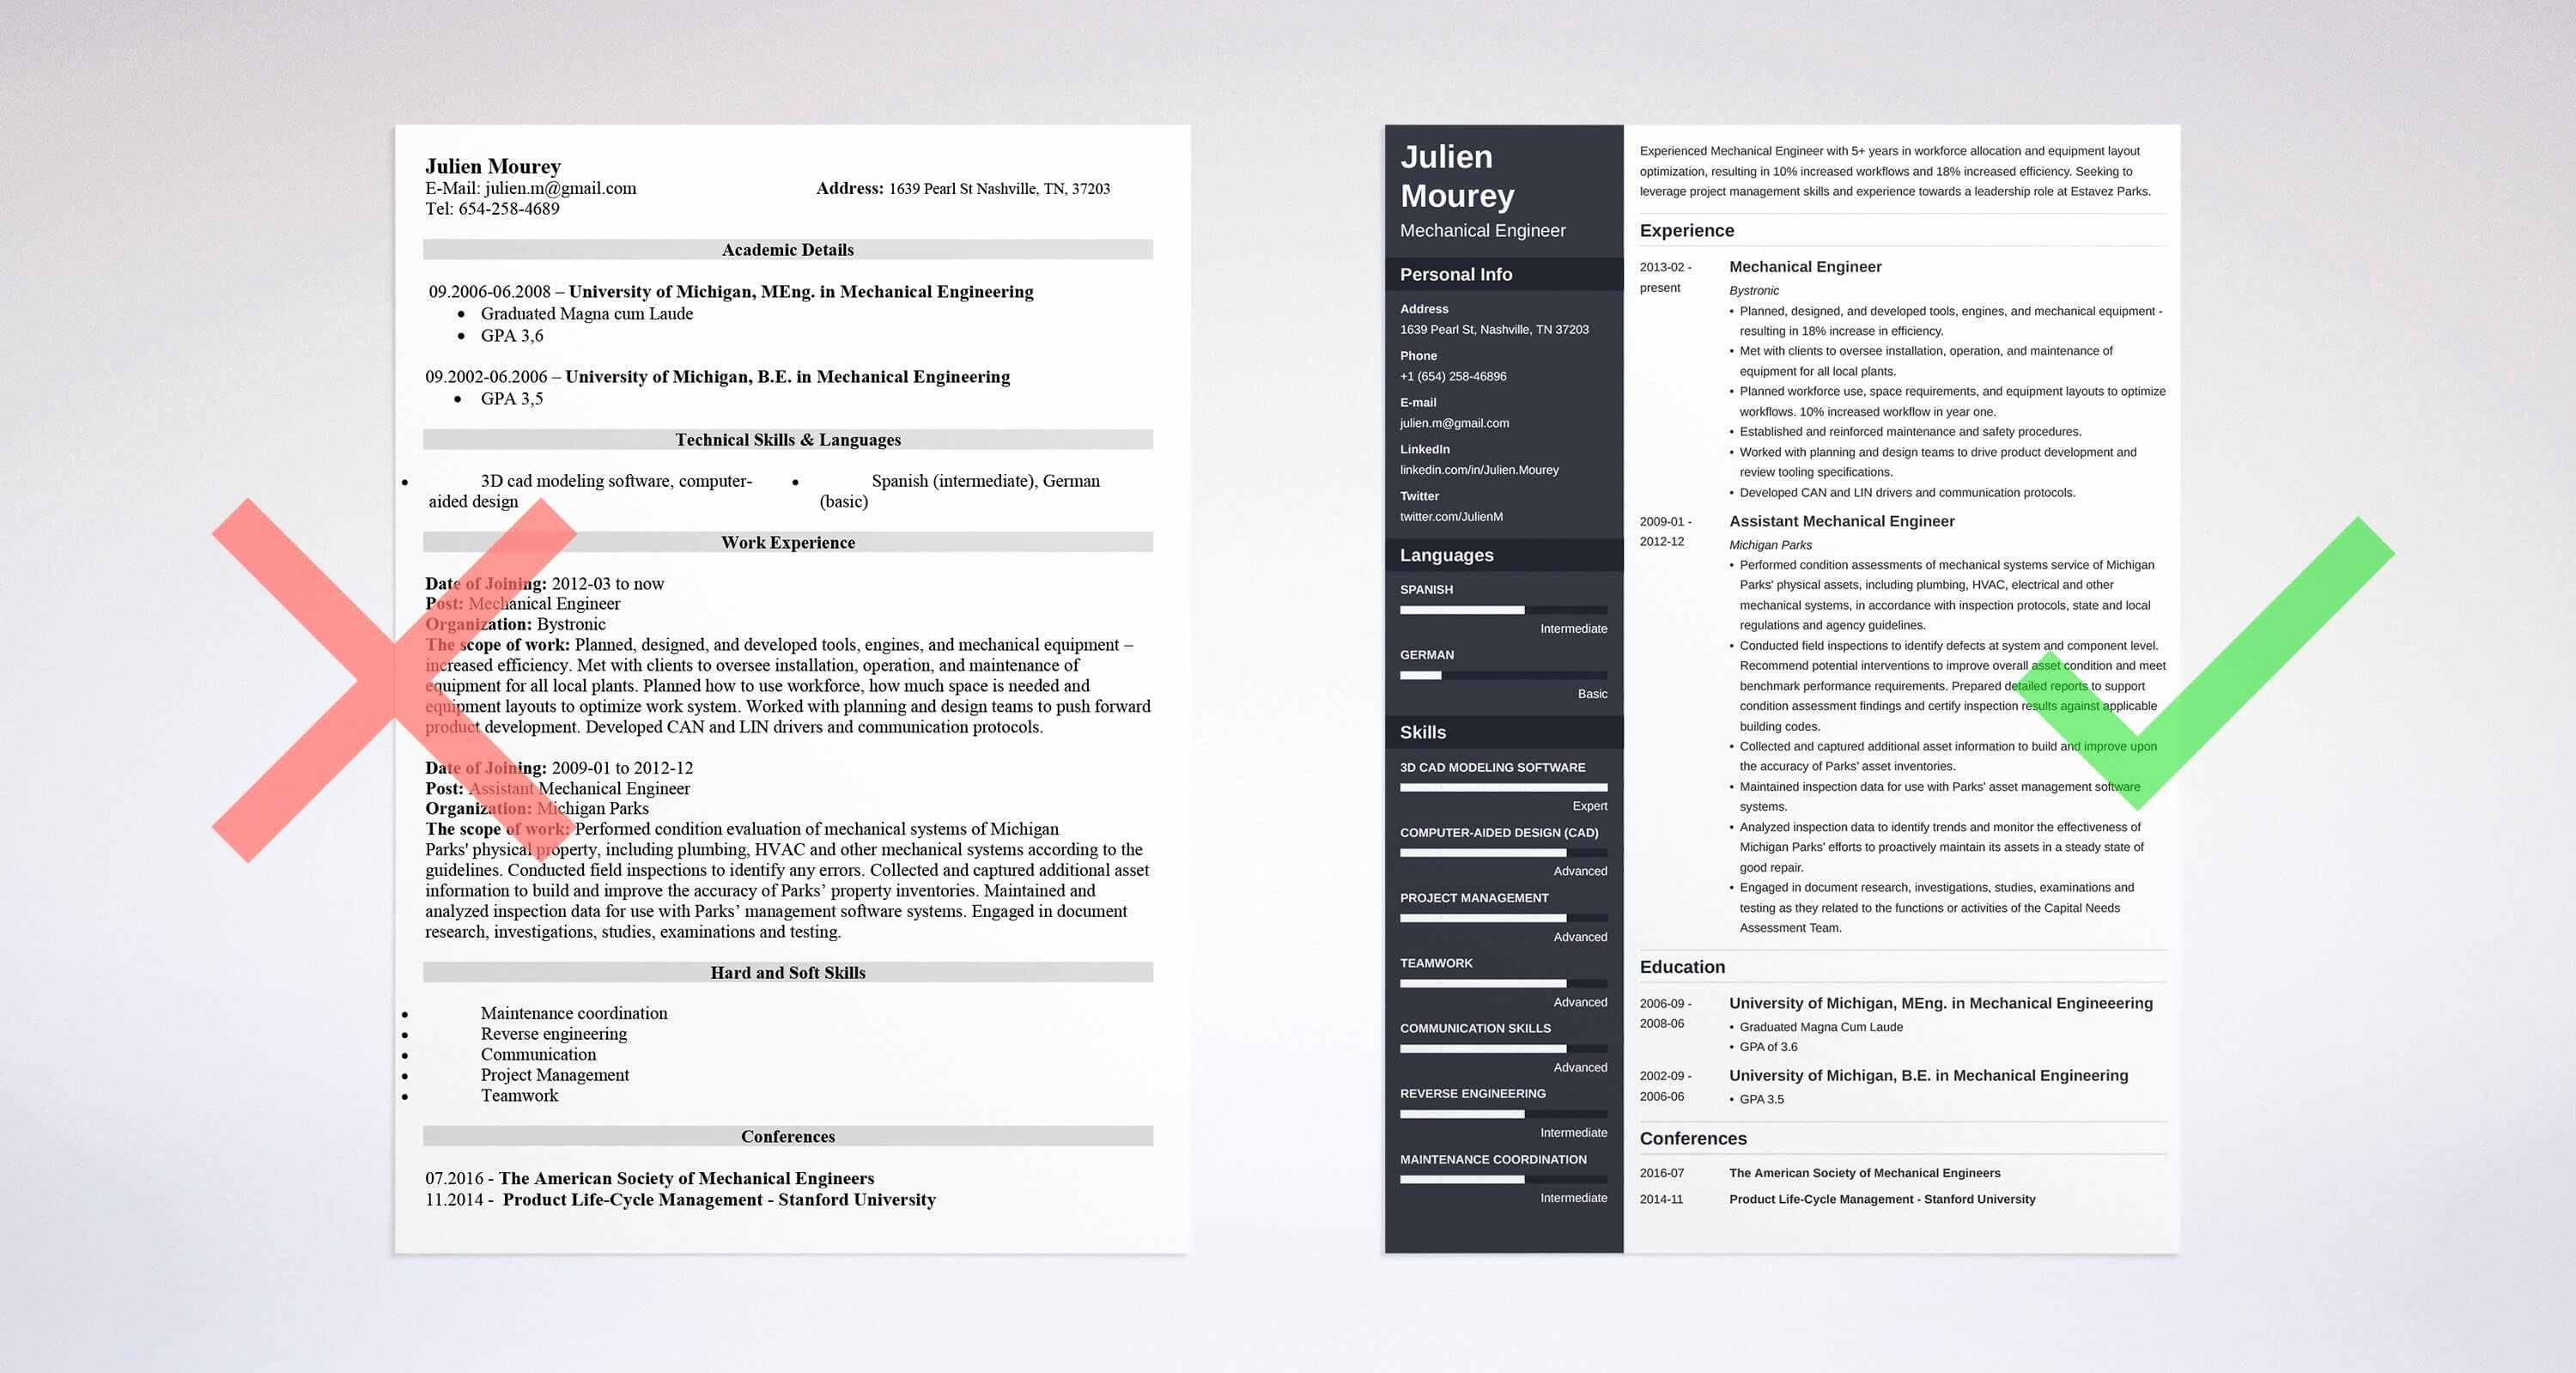 Mechanical Engineer Resume Sample Awesome Mechanical Engineering Resume Sample & Guide [20 Examples]